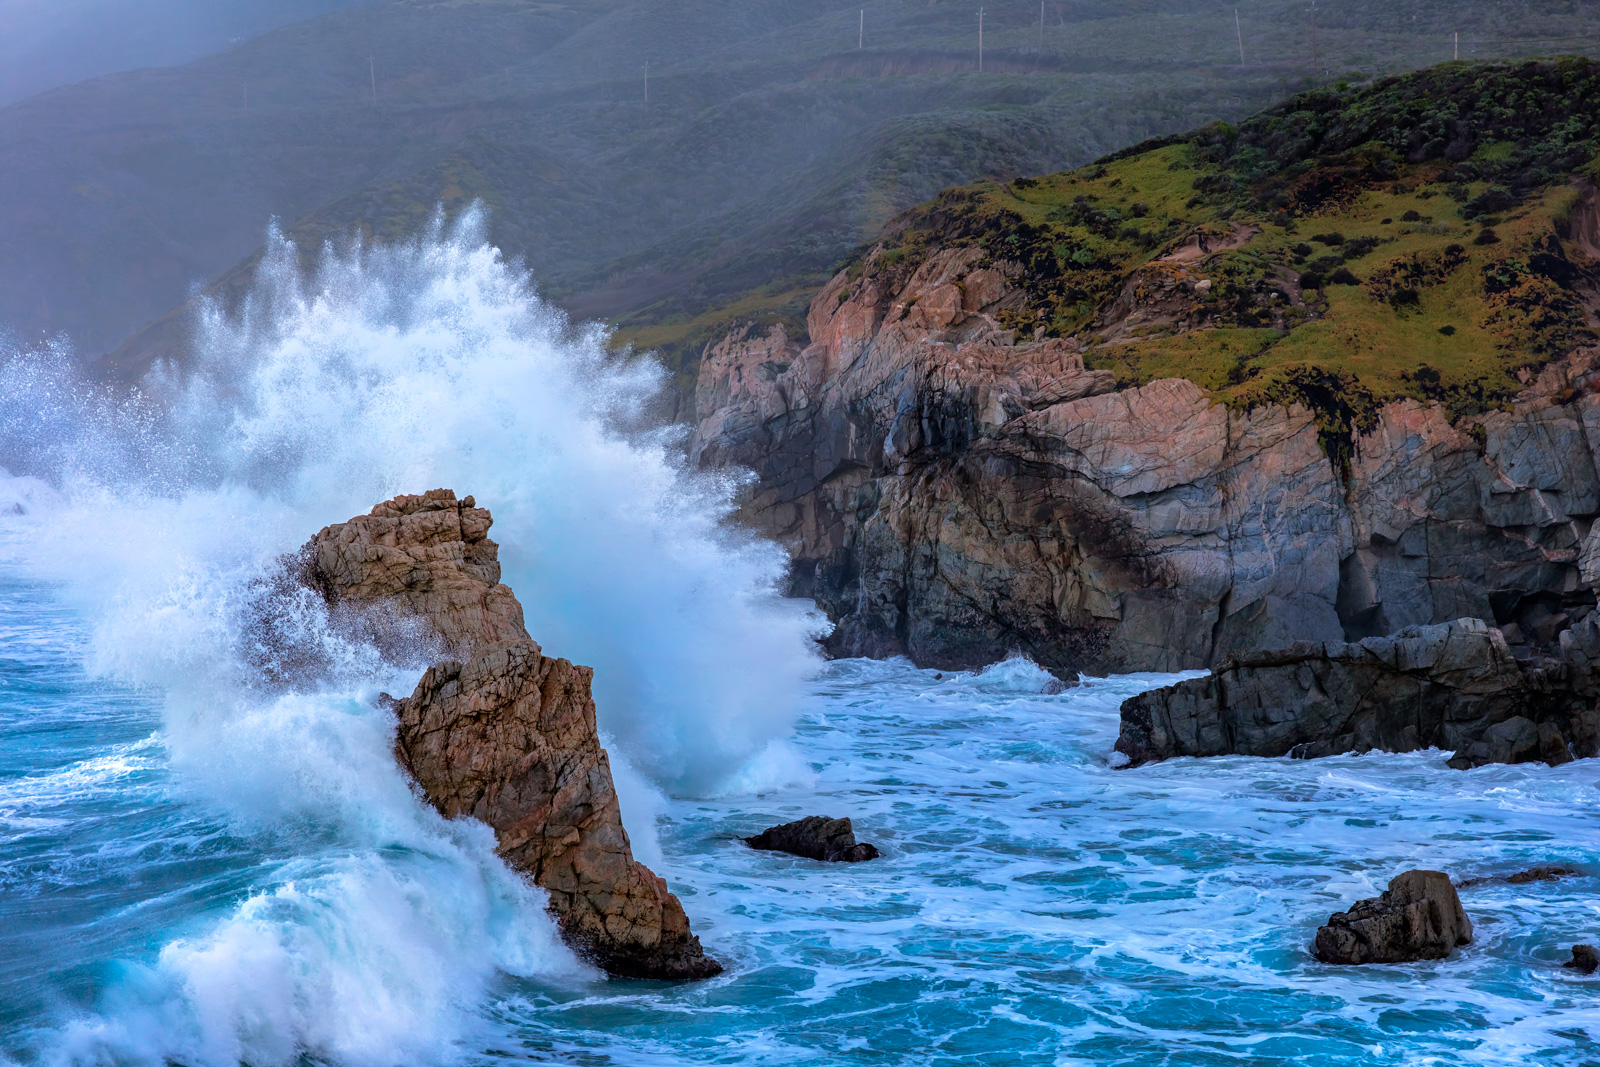 California, Garrapata, Storm, Wave, limited edition, photograph, fine art, landscape, coast, photo